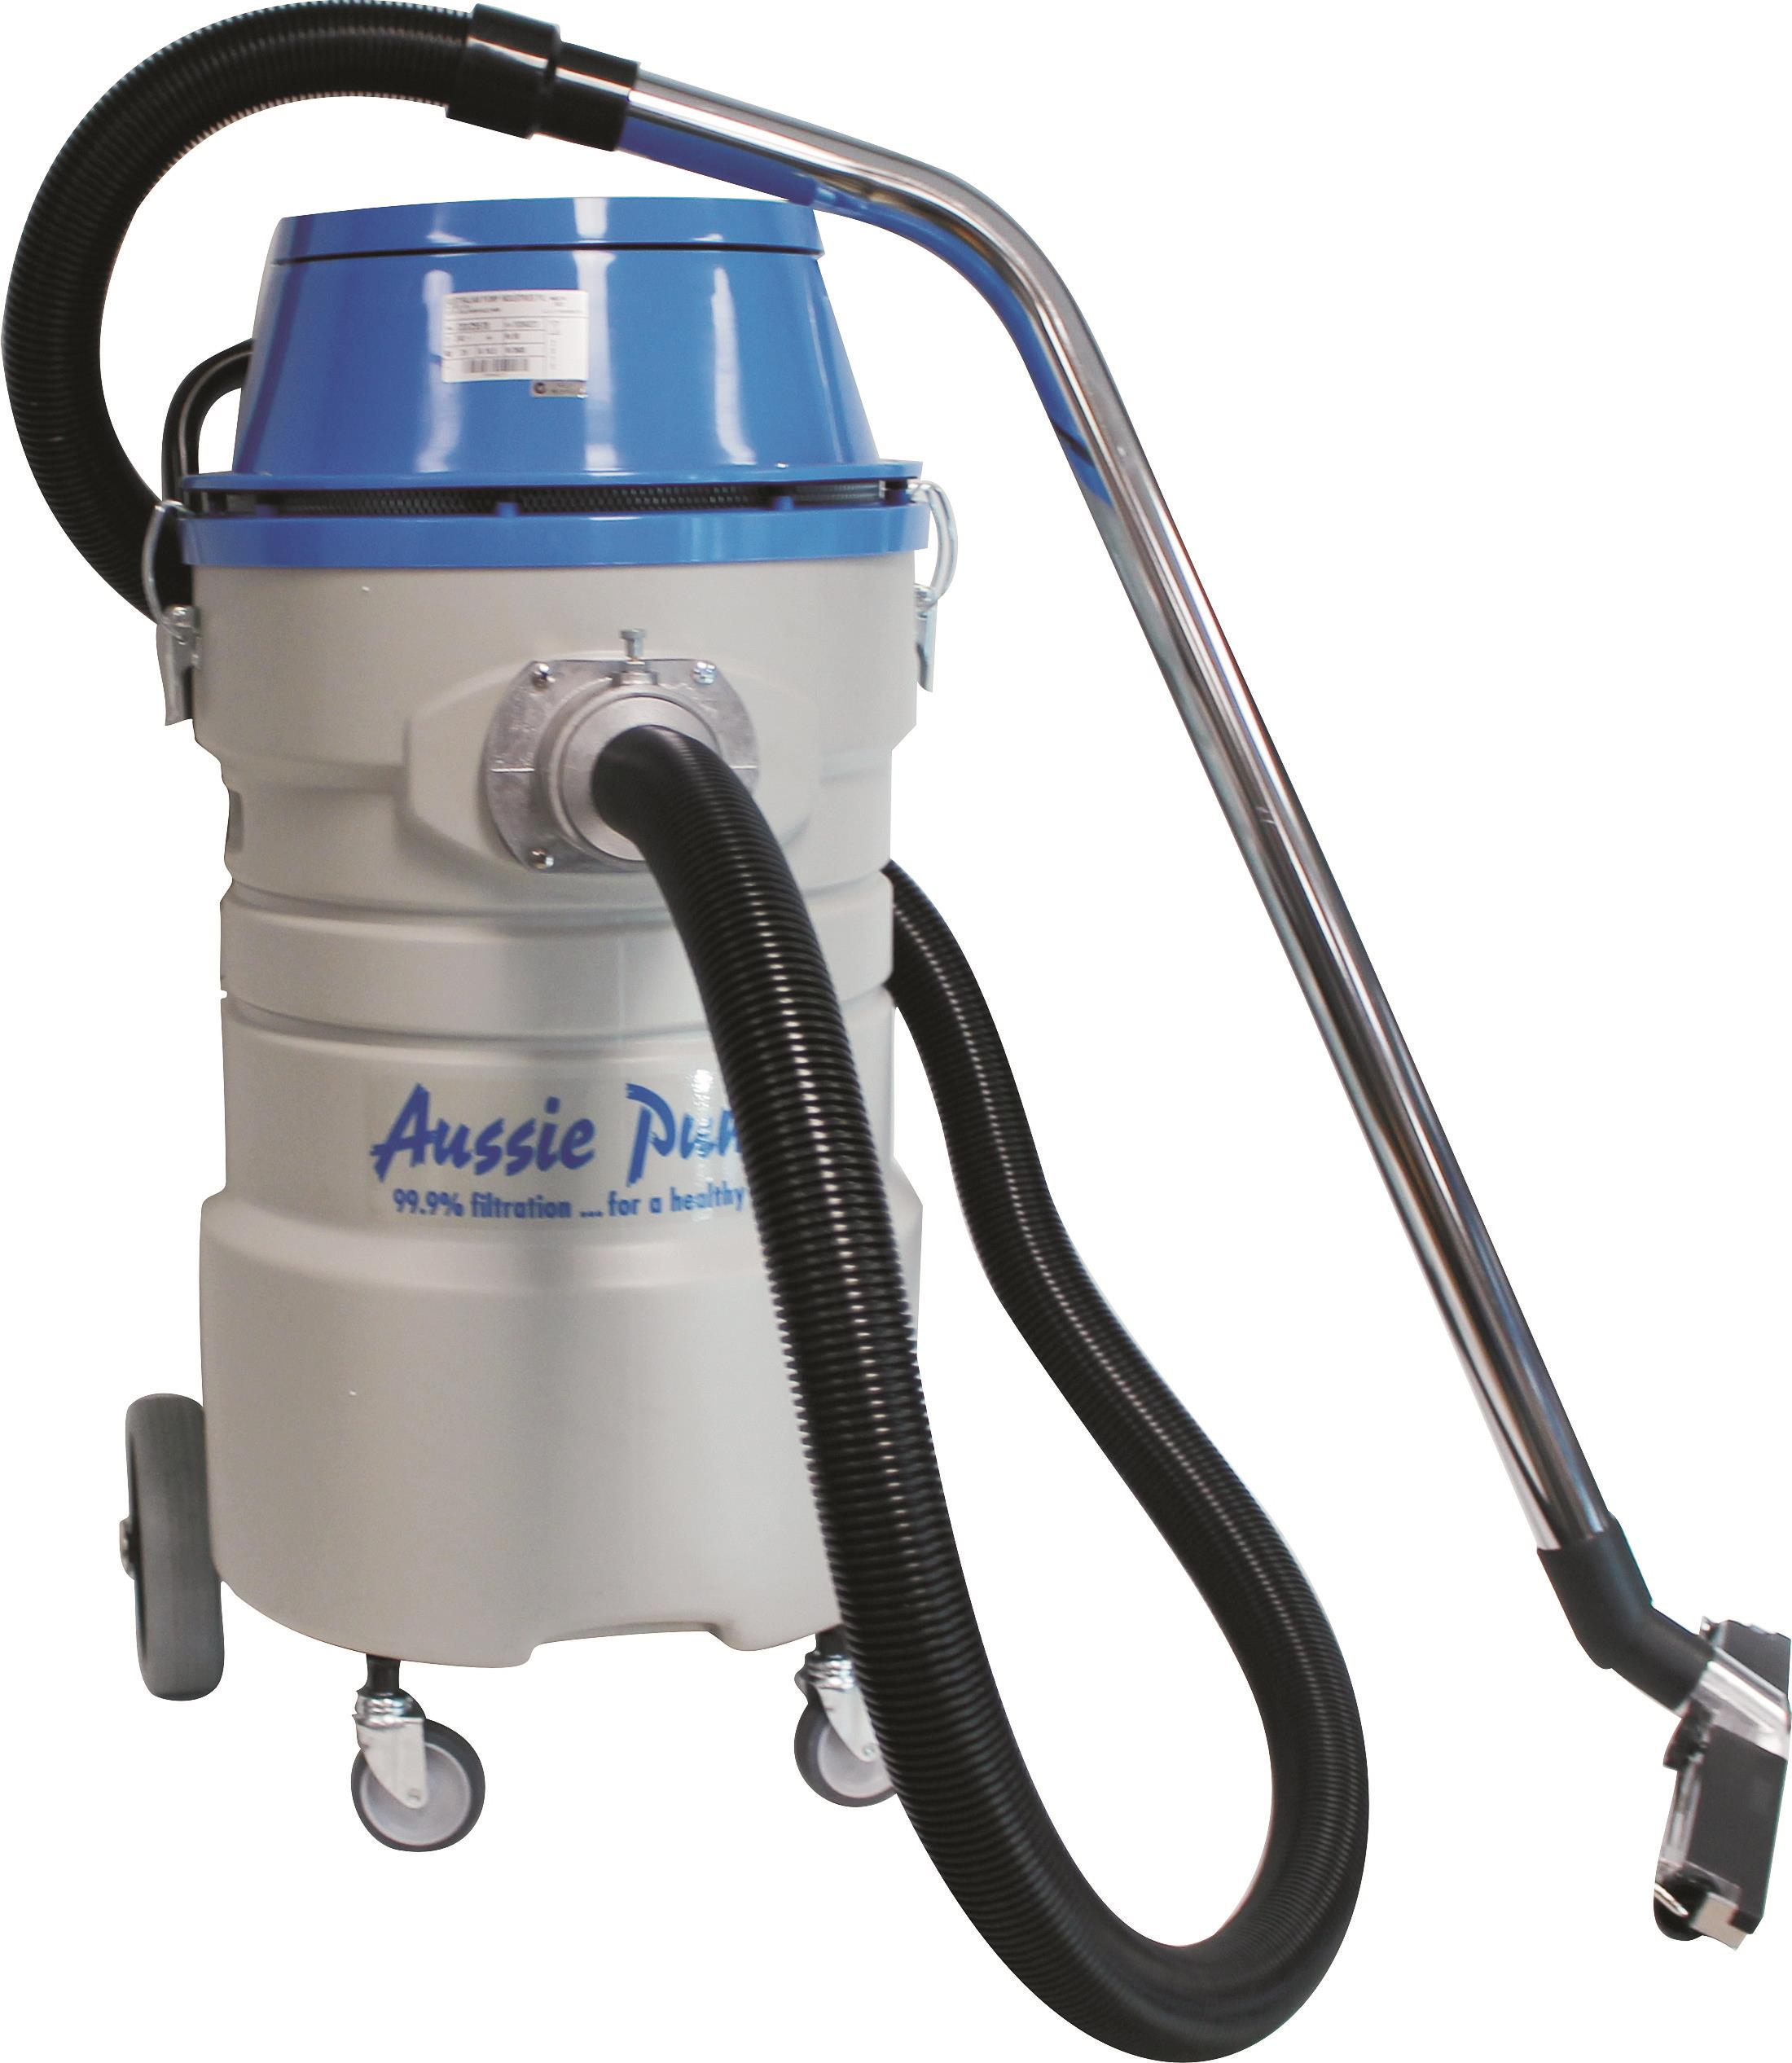 Industrial Vacuum Blower Systems : Aussie pumps vc wet dry industrial vacuum cleaner with